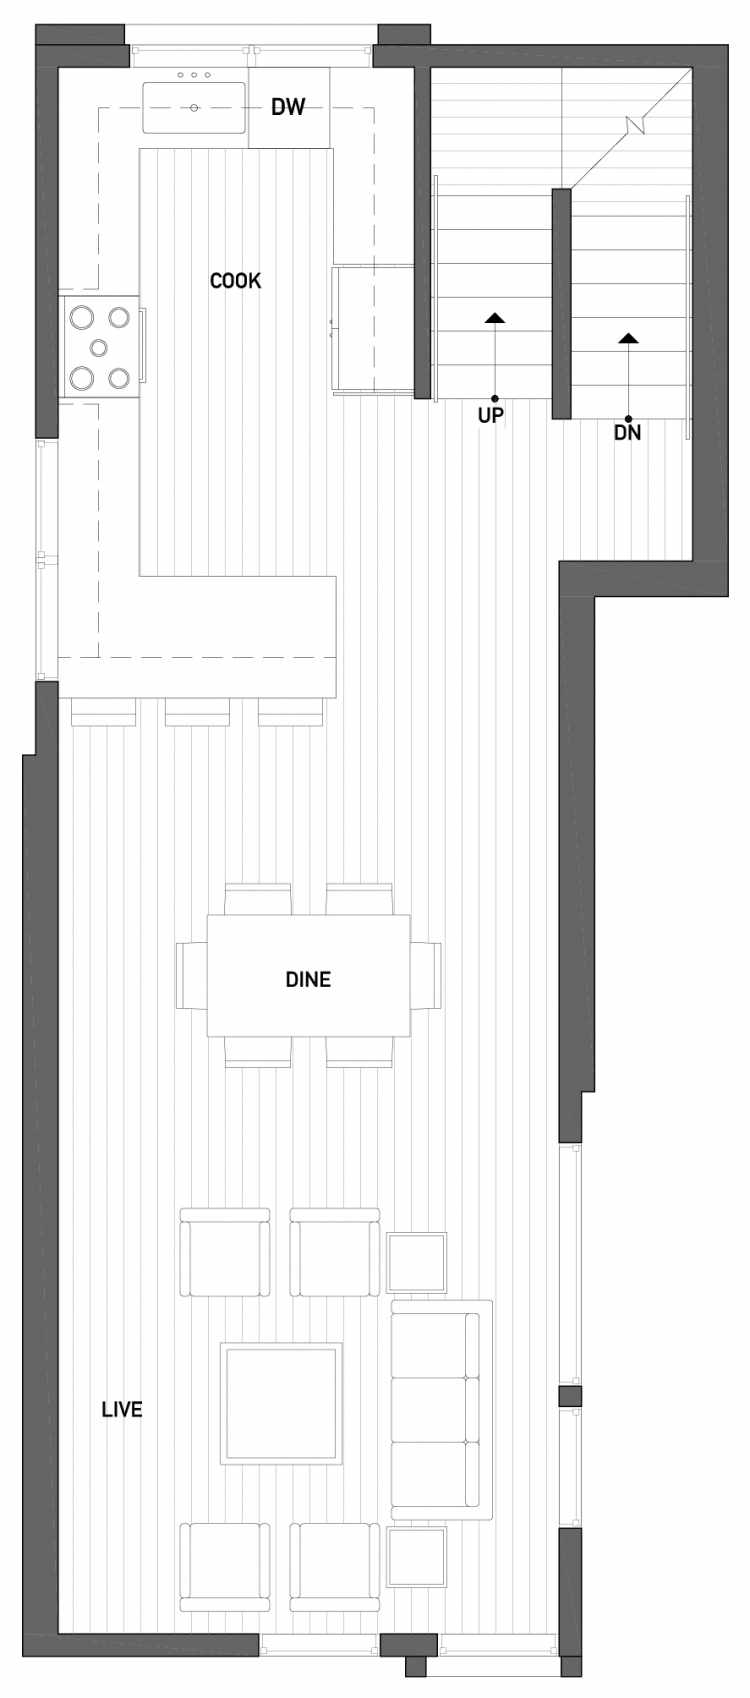 Second Floor Plan of 2504 Everett Ave E of the Baymont Townhomes